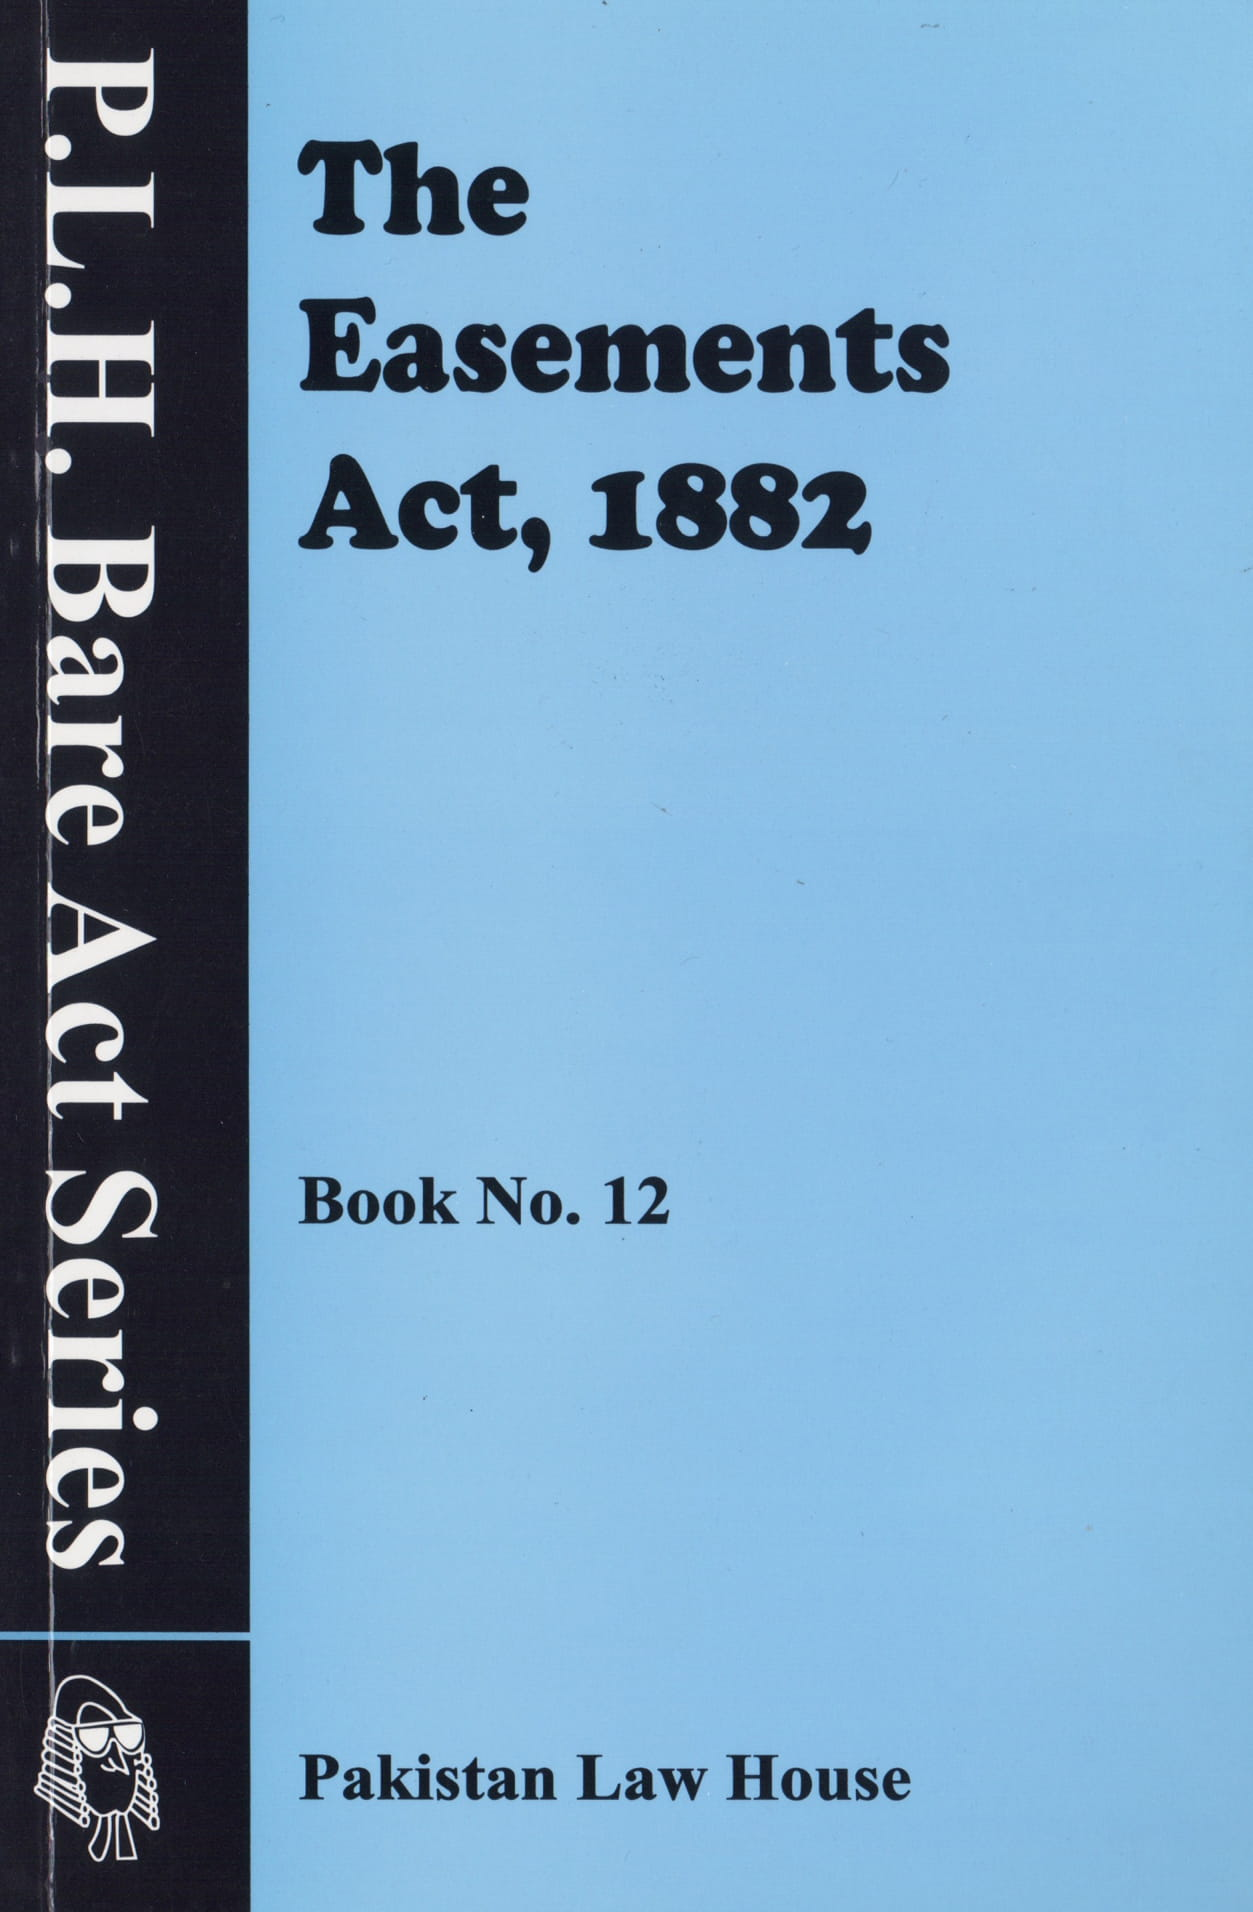 The Easements Act,1882